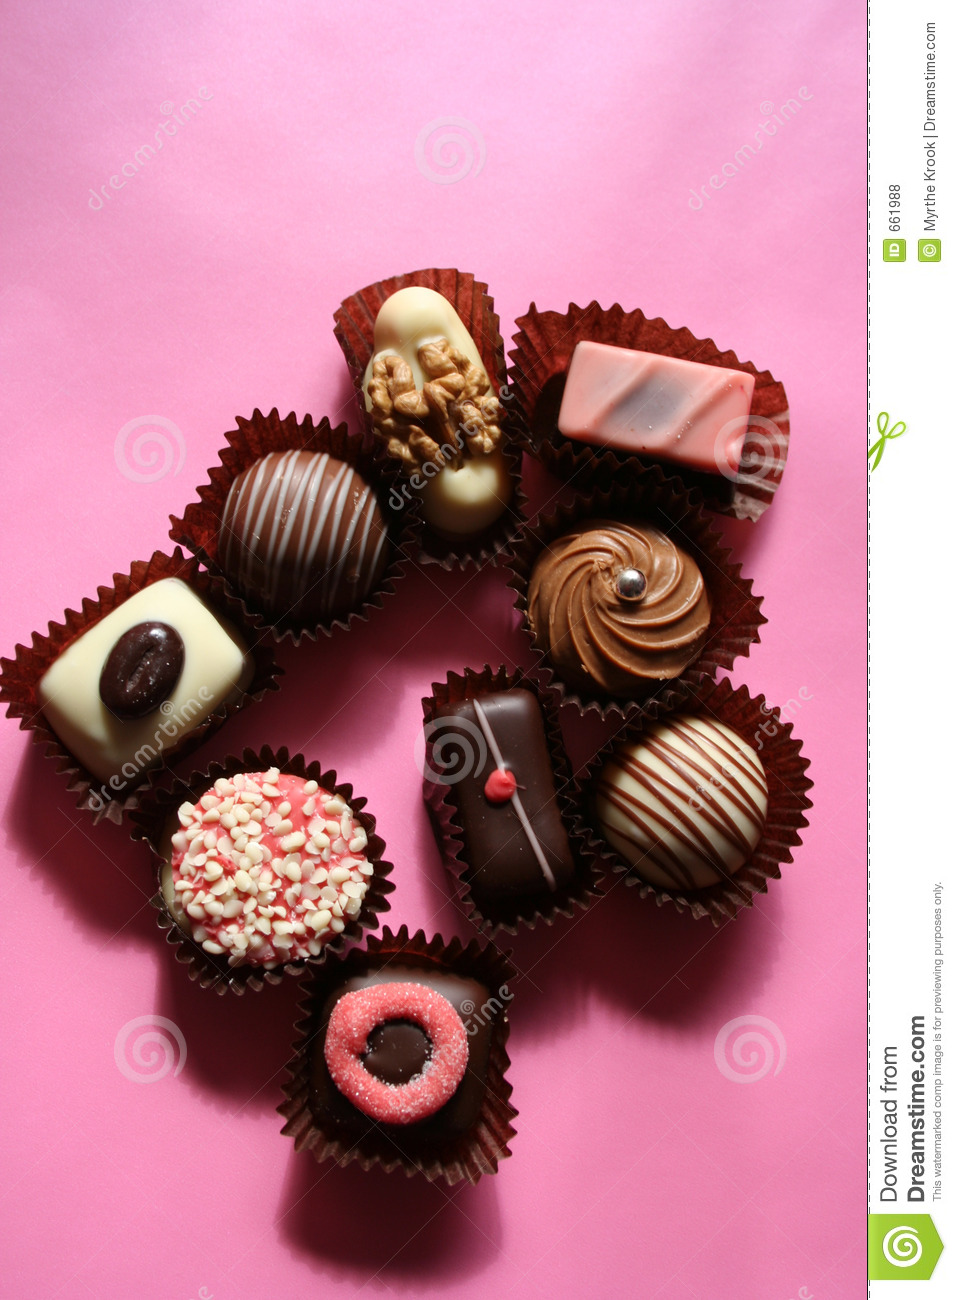 Pink Chocolate Royalty Free Stock Photos - Image: 661988